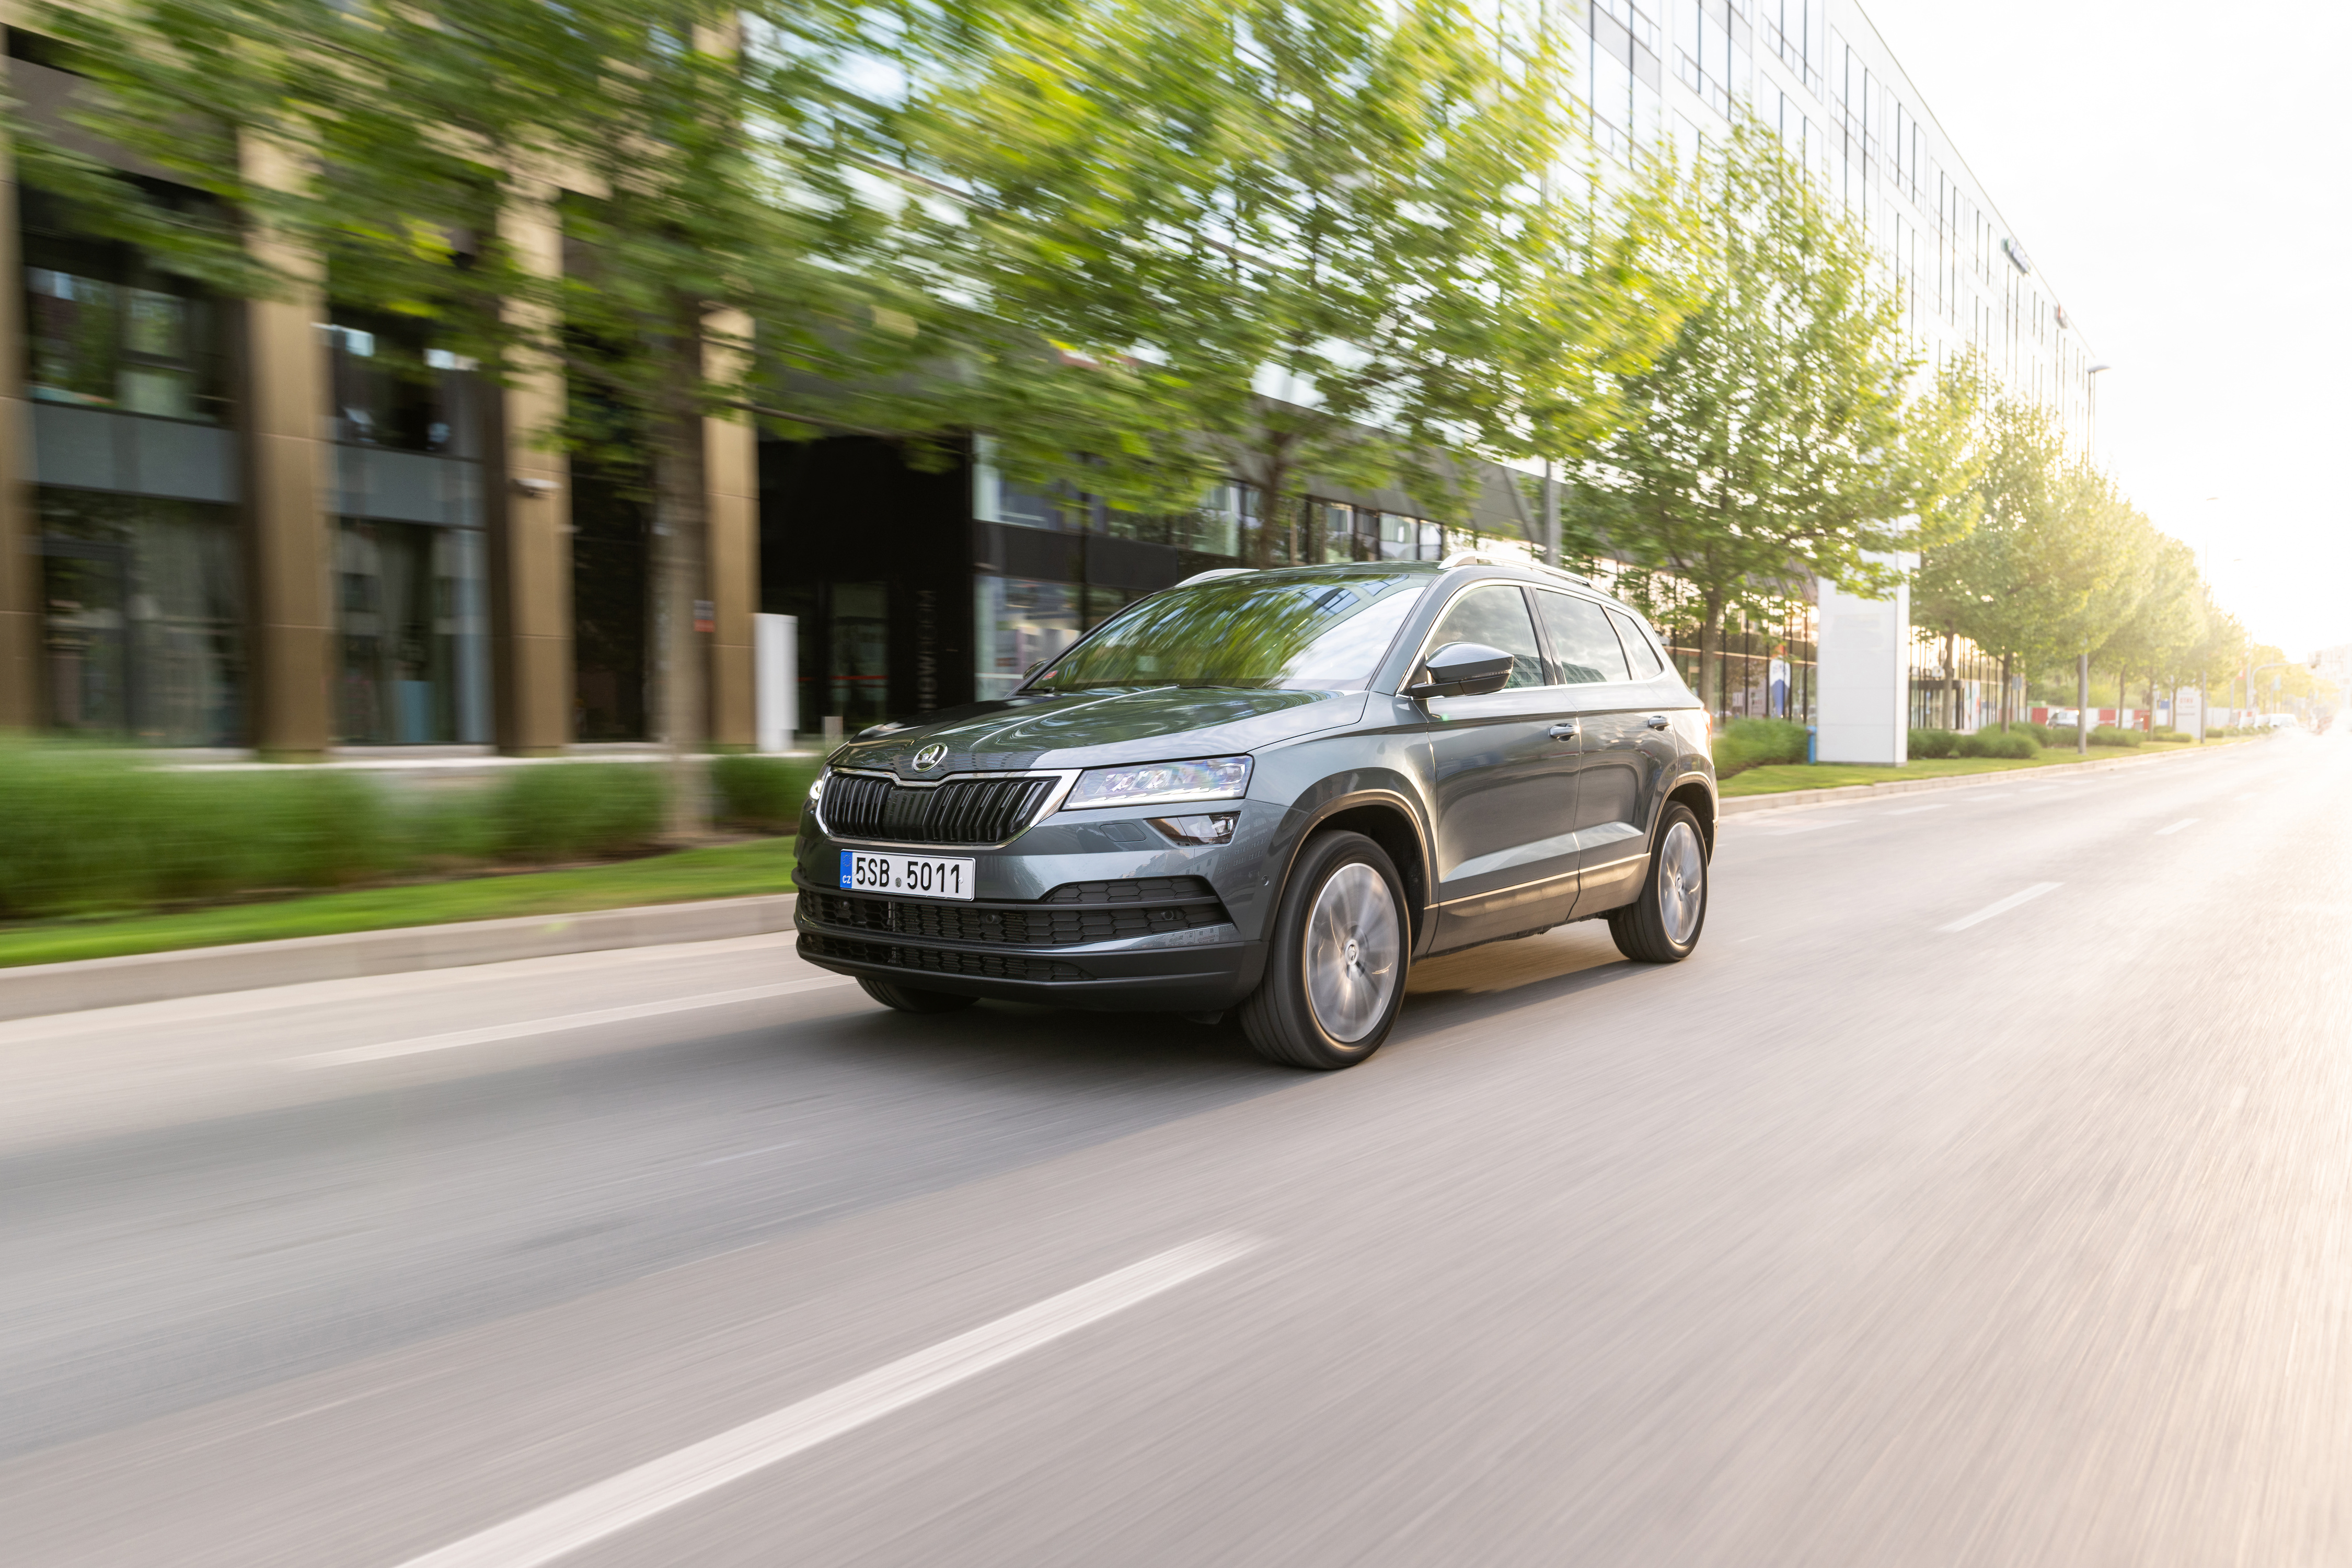 Countless new features introduced to SKODA portfolio for 2021 model year - Image 3